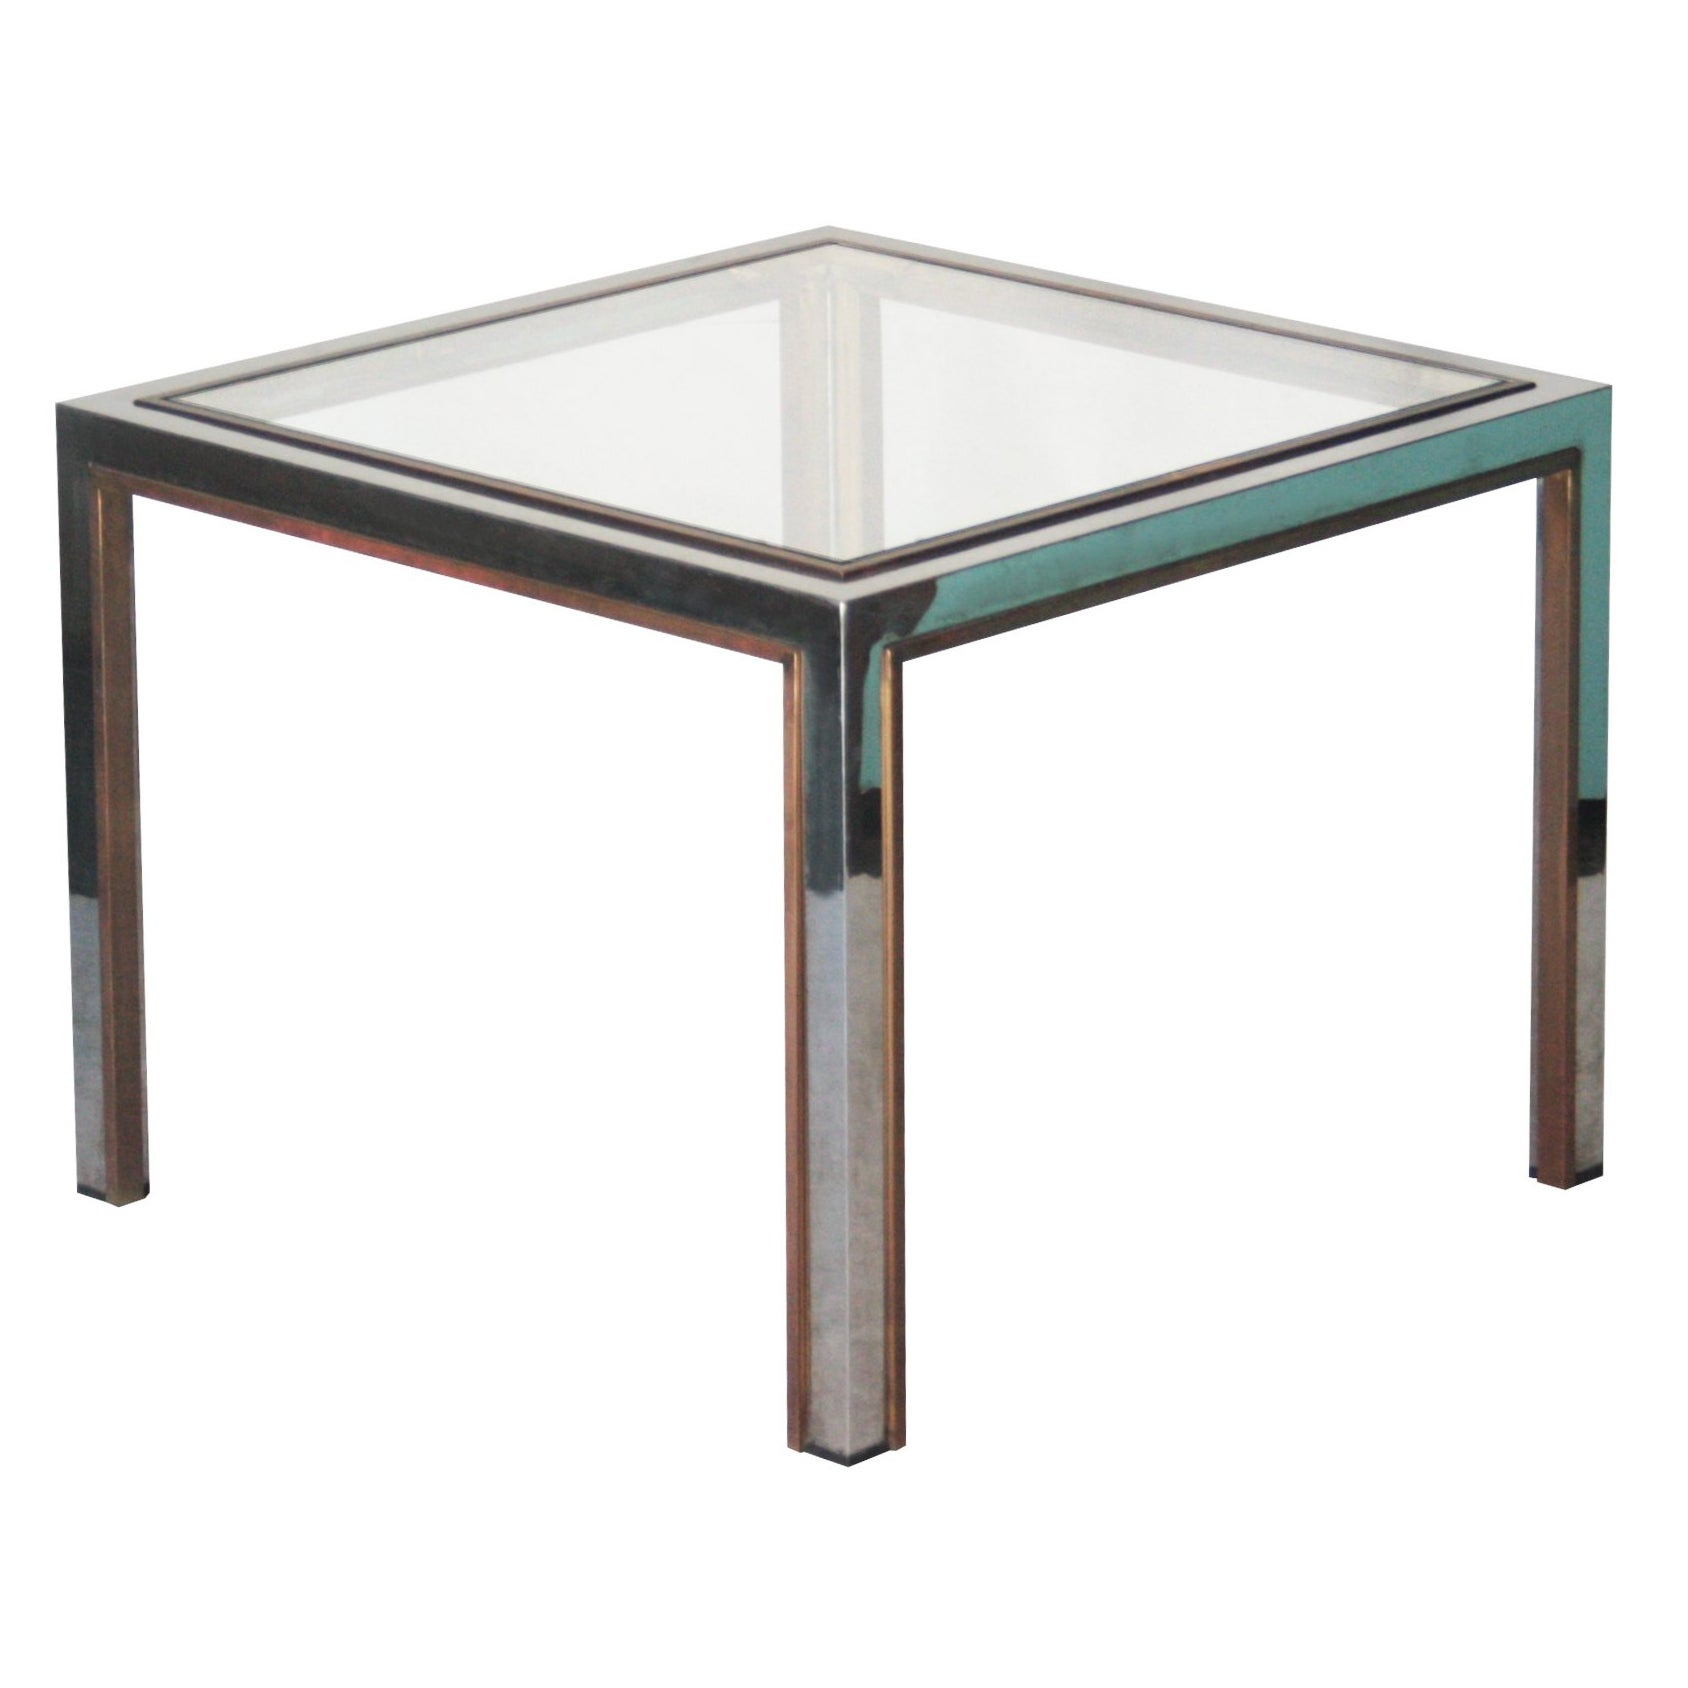 Mid-century Modern Square Steel Brass Side Table, France, 1970